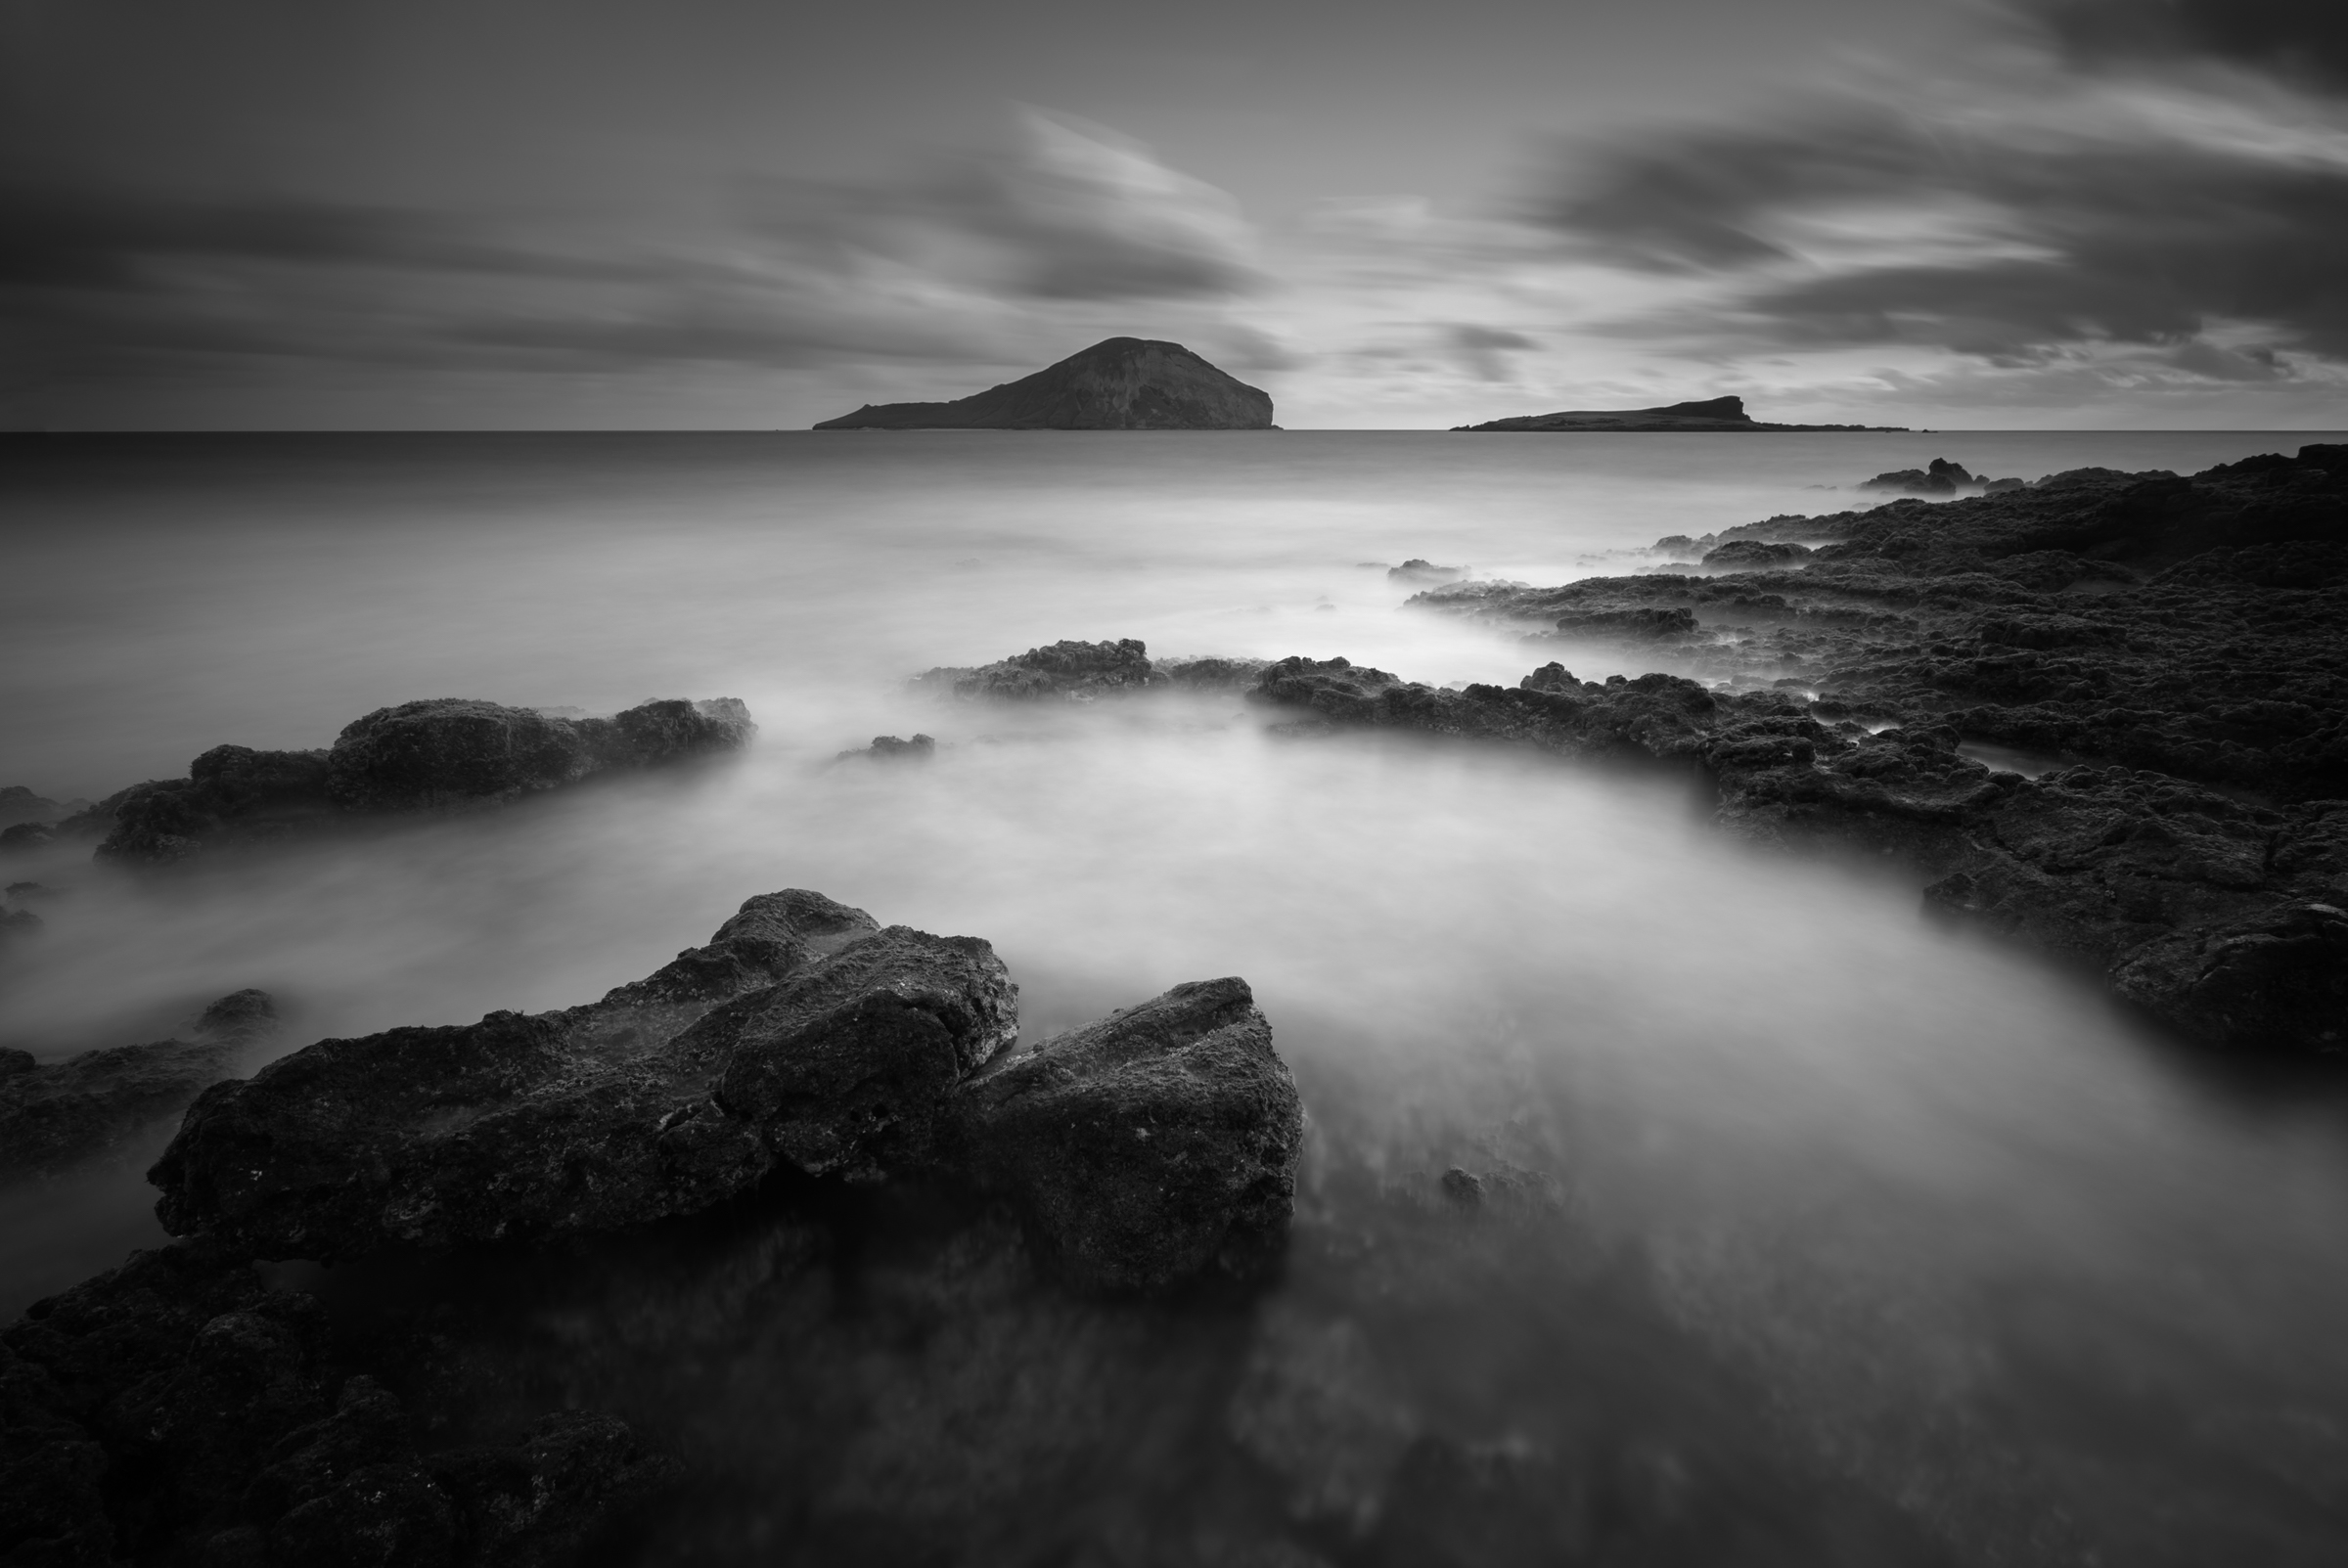 Sunrise at Makapuu Beach Park Oahu, Hawaii   Stacked Lee Big Stopper &3 stop hard grad to darken sky   Sony A7S II   121 sec.    f/8    ISO 50     Sony Zeiss 16-35mm f/4   Edited in Lightroom & Photoshop CC 2015   Copyright 2016 Ryan Sakamoto, All rights reserved